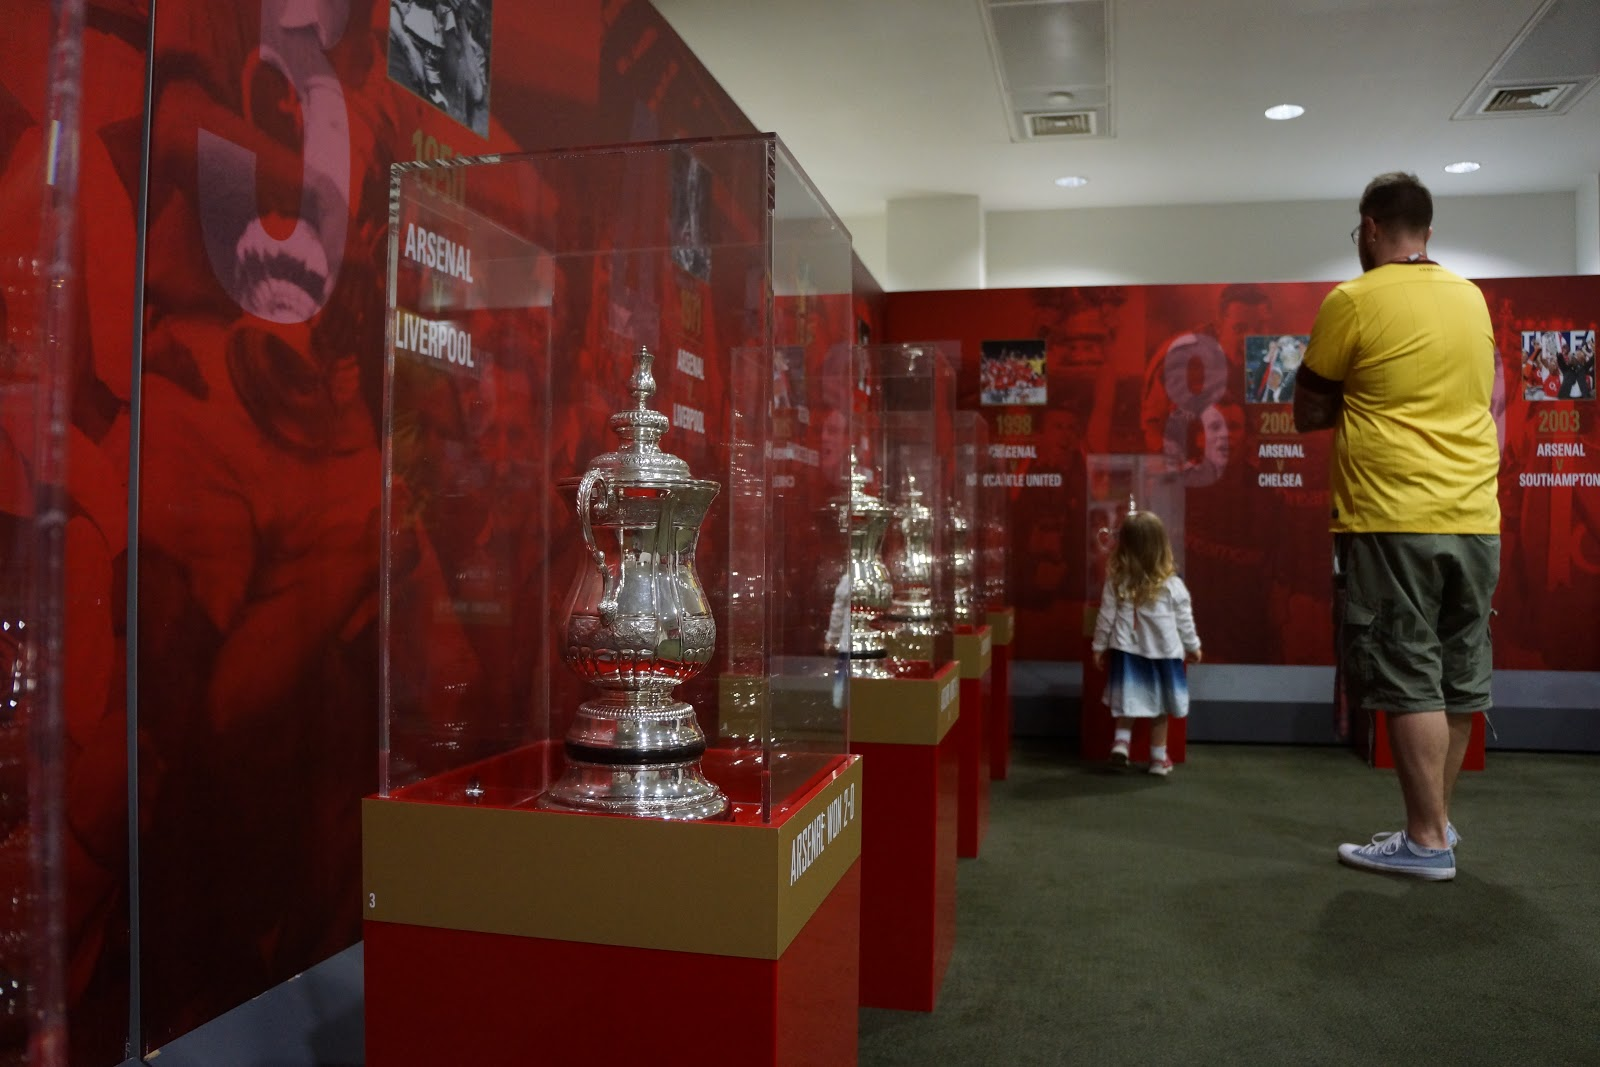 trophy room at Arsenal Stadium